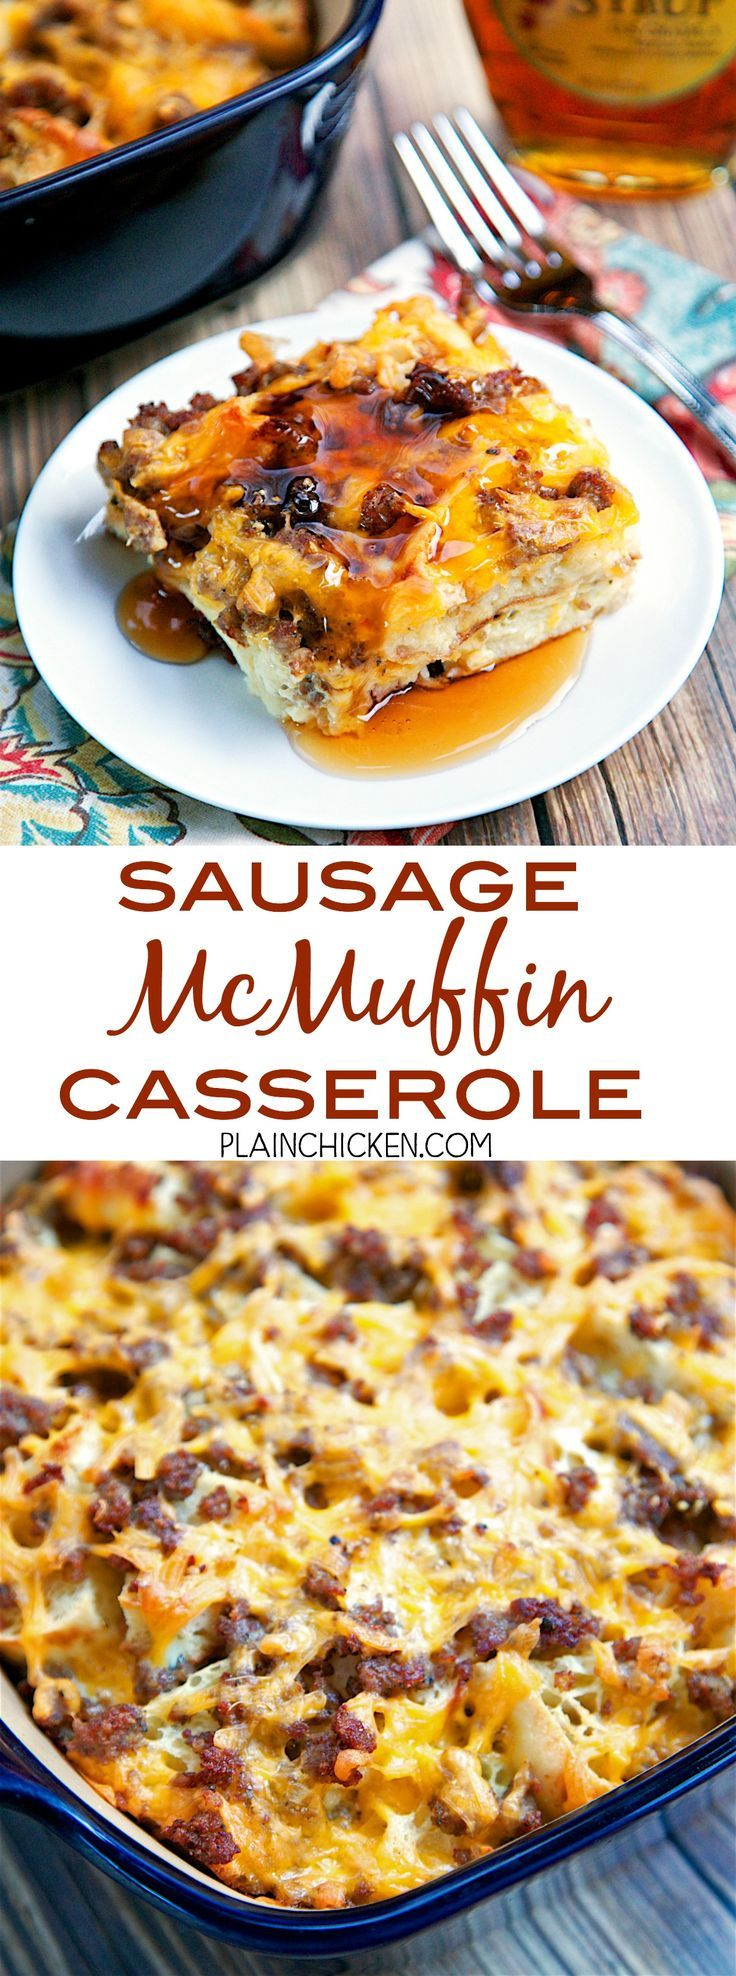 Sausage McMuffin Casserole - Chopped English muffins, sausage, cheese, eggs and milk. Can make a day ahead of time and bake for breakfast, lunch or dinner.